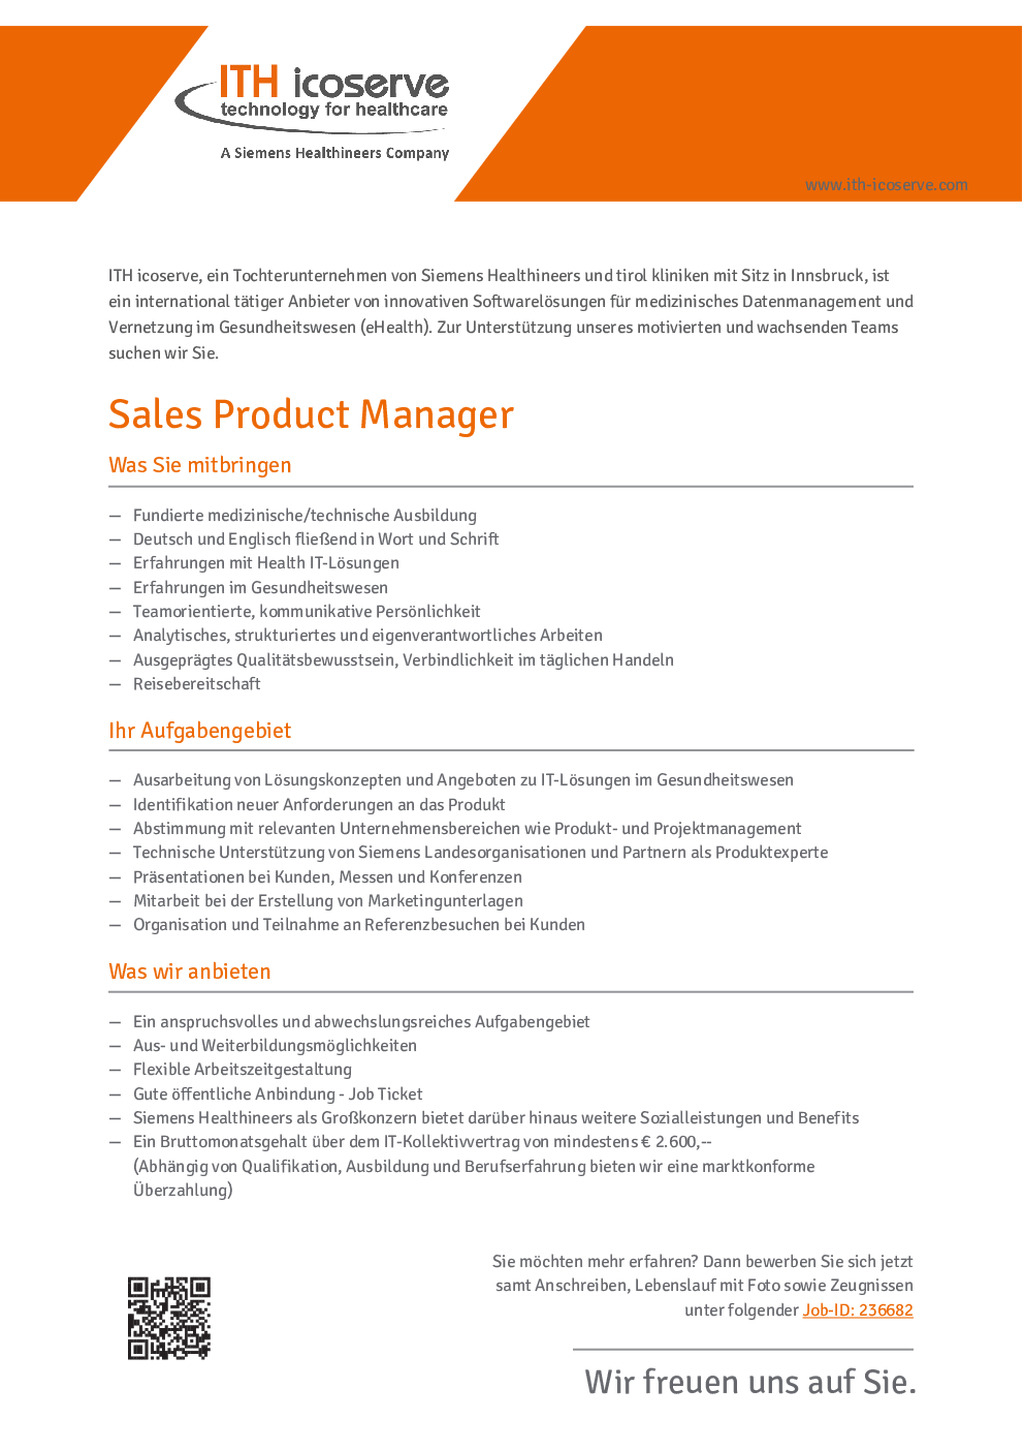 Sales Product Manager (m/w)